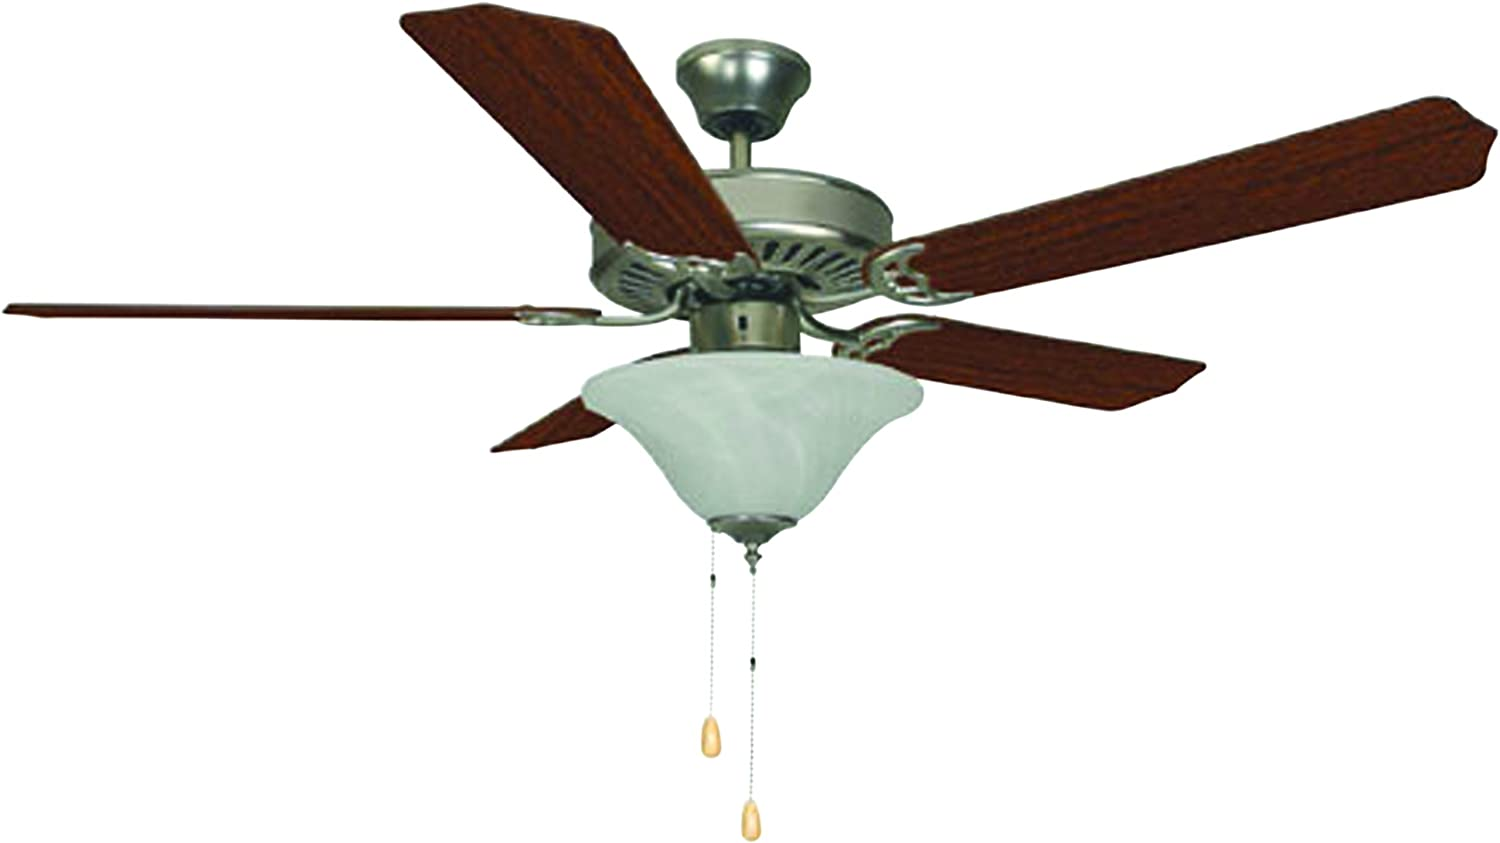 Bala 283014 2021 new Dual Mount Ceiling Fan Light Kit Bowl Max 77% OFF with 52-Inch